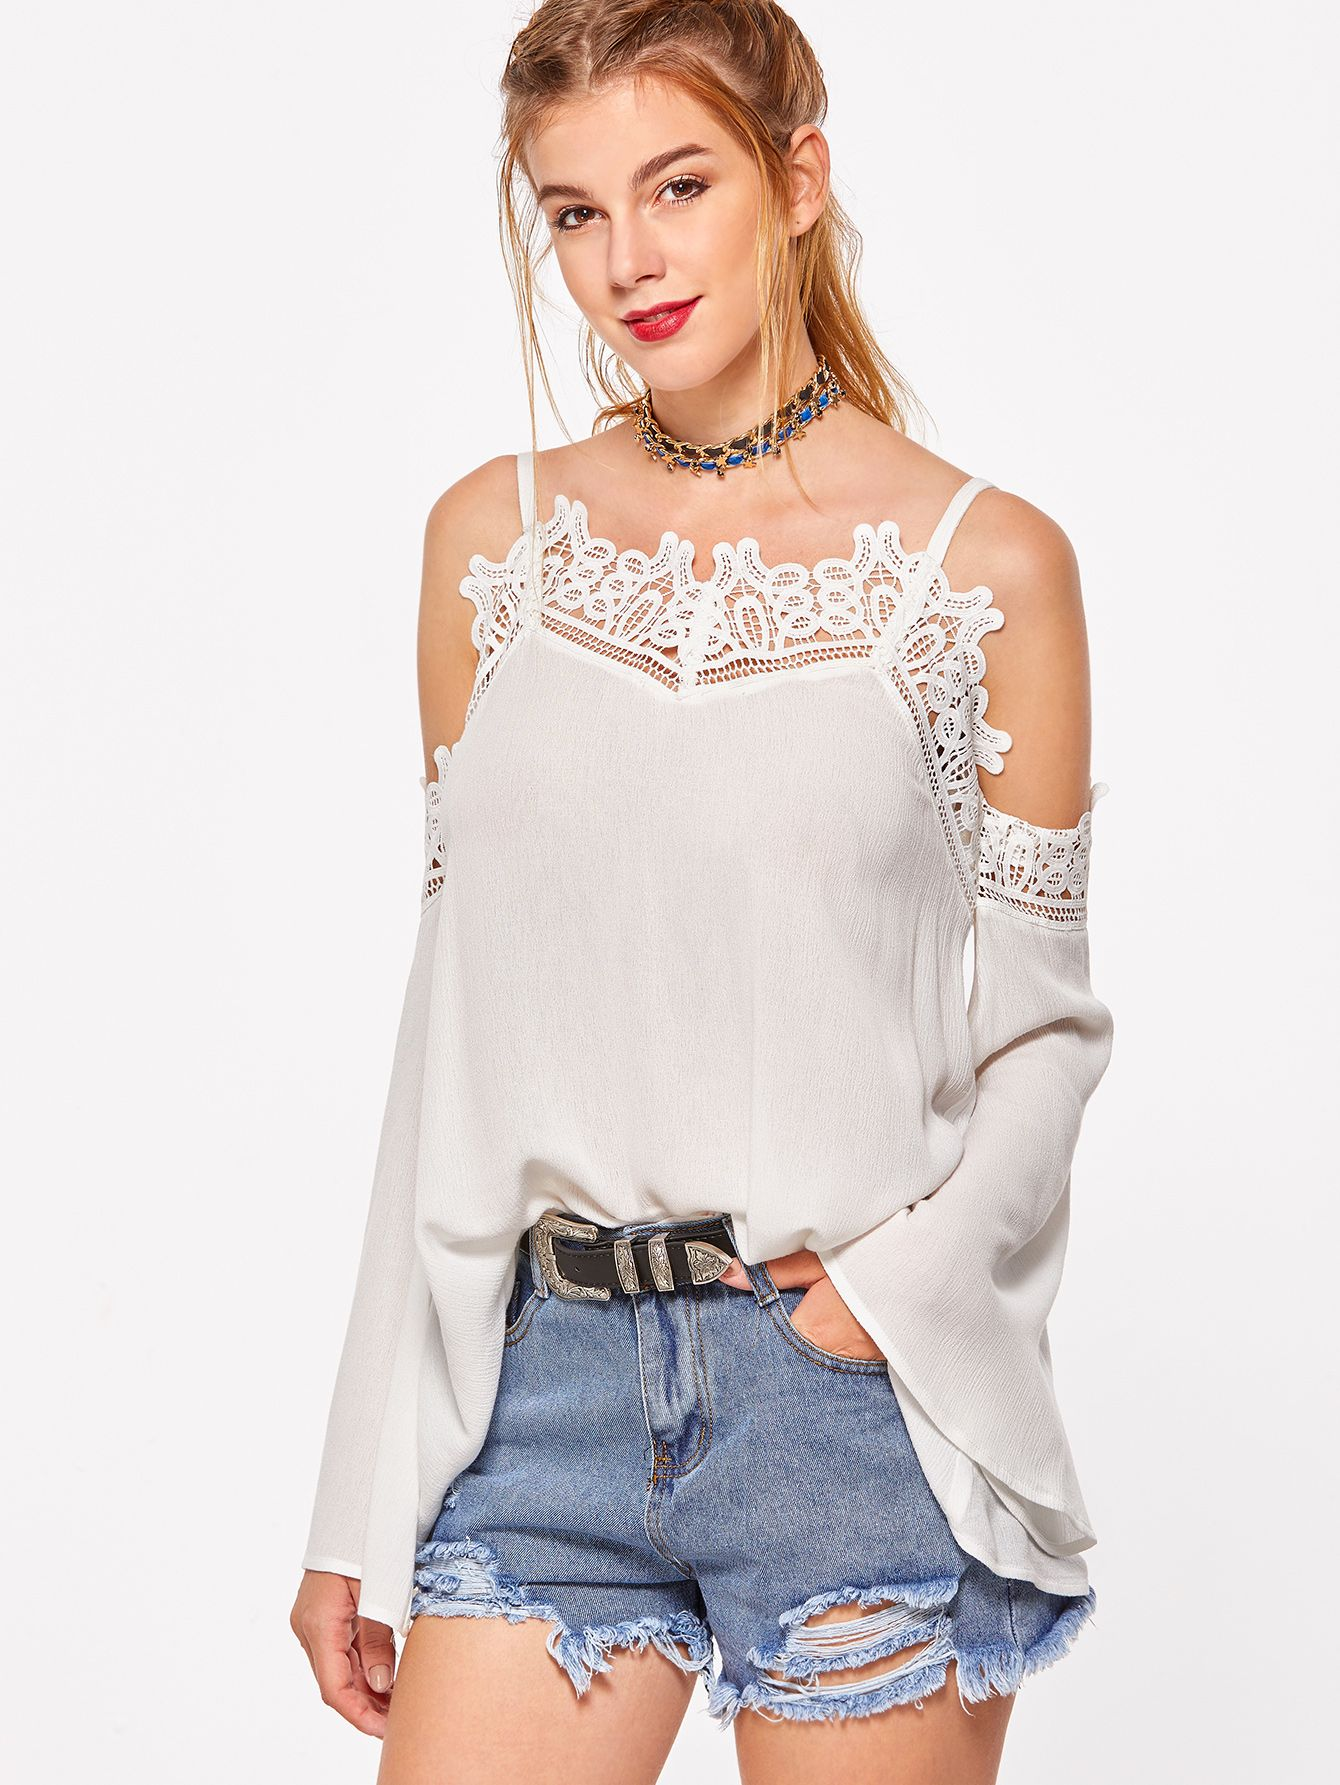 90947cc8a0ad24 Shop White Lace Trim Cold Shoulder Bell Sleeve Top online. SheIn offers White  Lace Trim Cold Shoulder Bell Sleeve Top & more to fit your fashionable  needs.